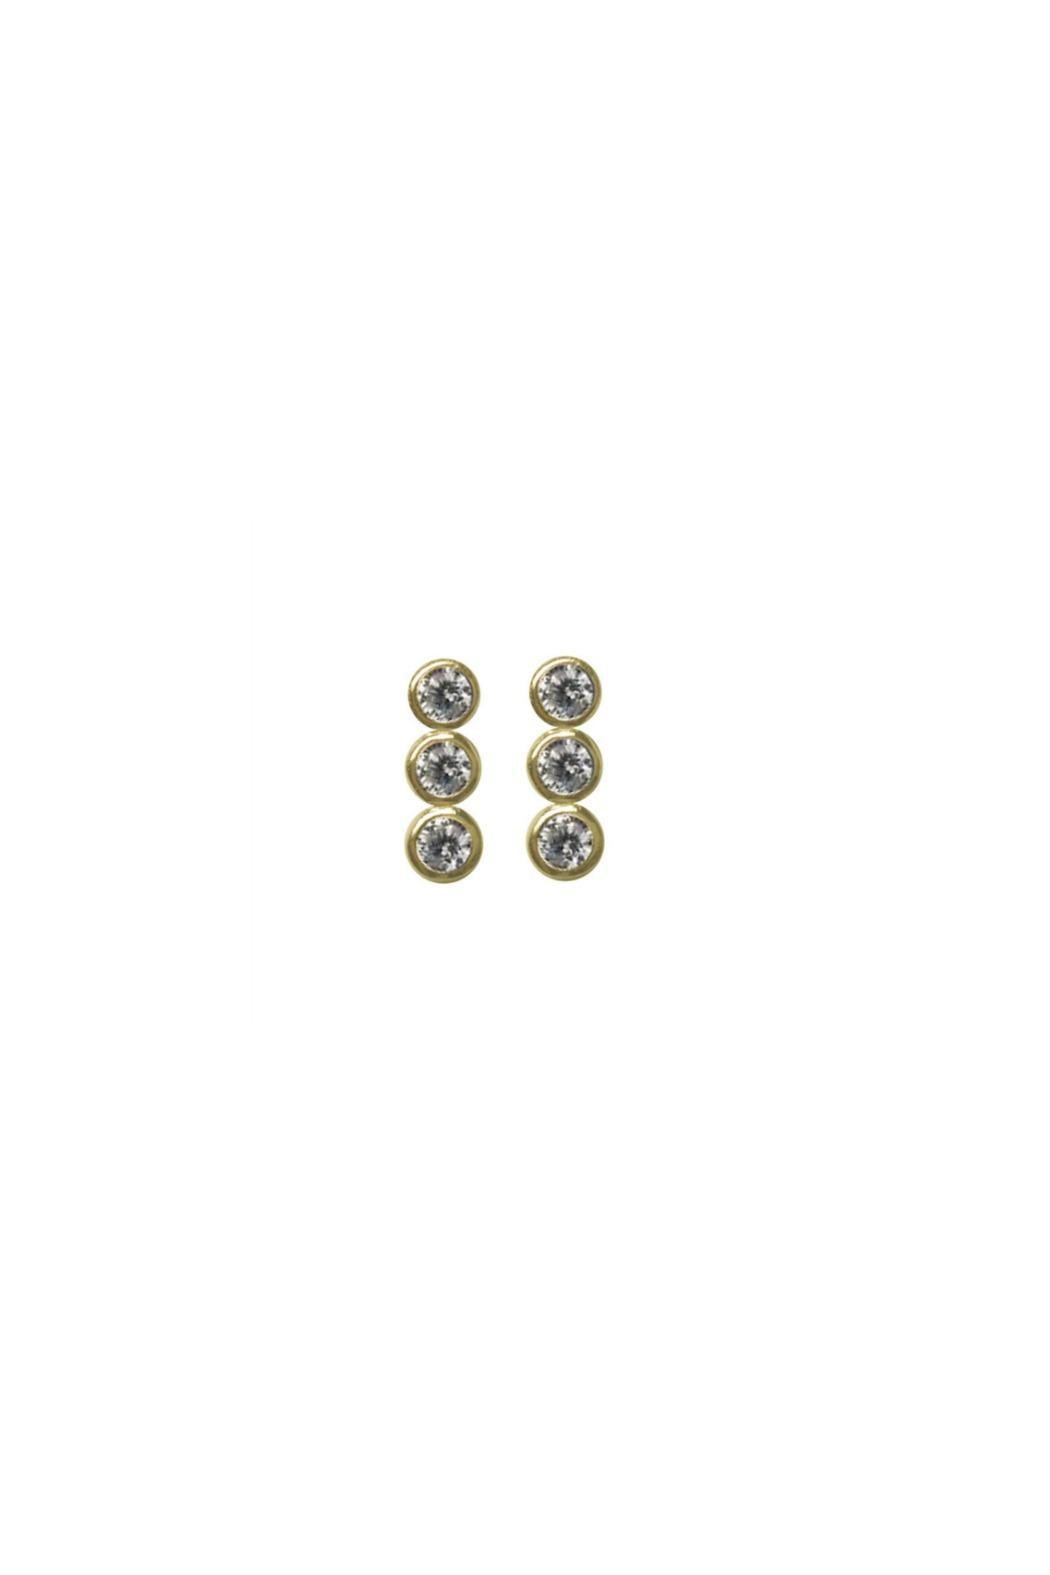 Jaimie Nicole Gold Cz-Stud Earrings - Front Cropped Image